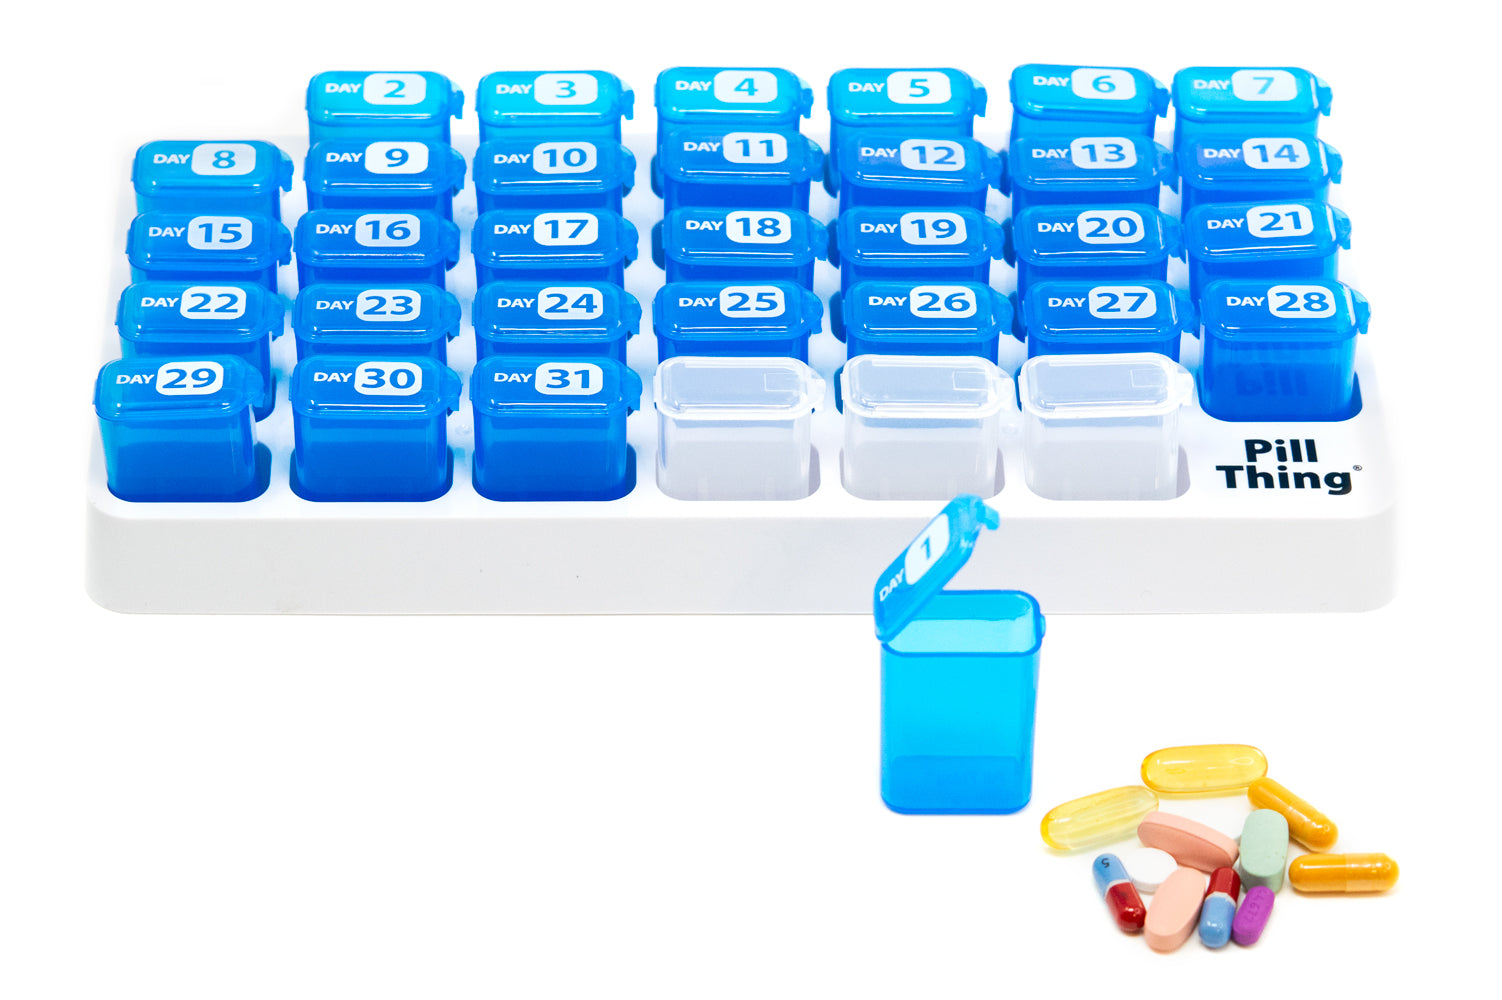 MAXX XXL 31 Day Monthly Pill Organizer with Removable Daily Pods